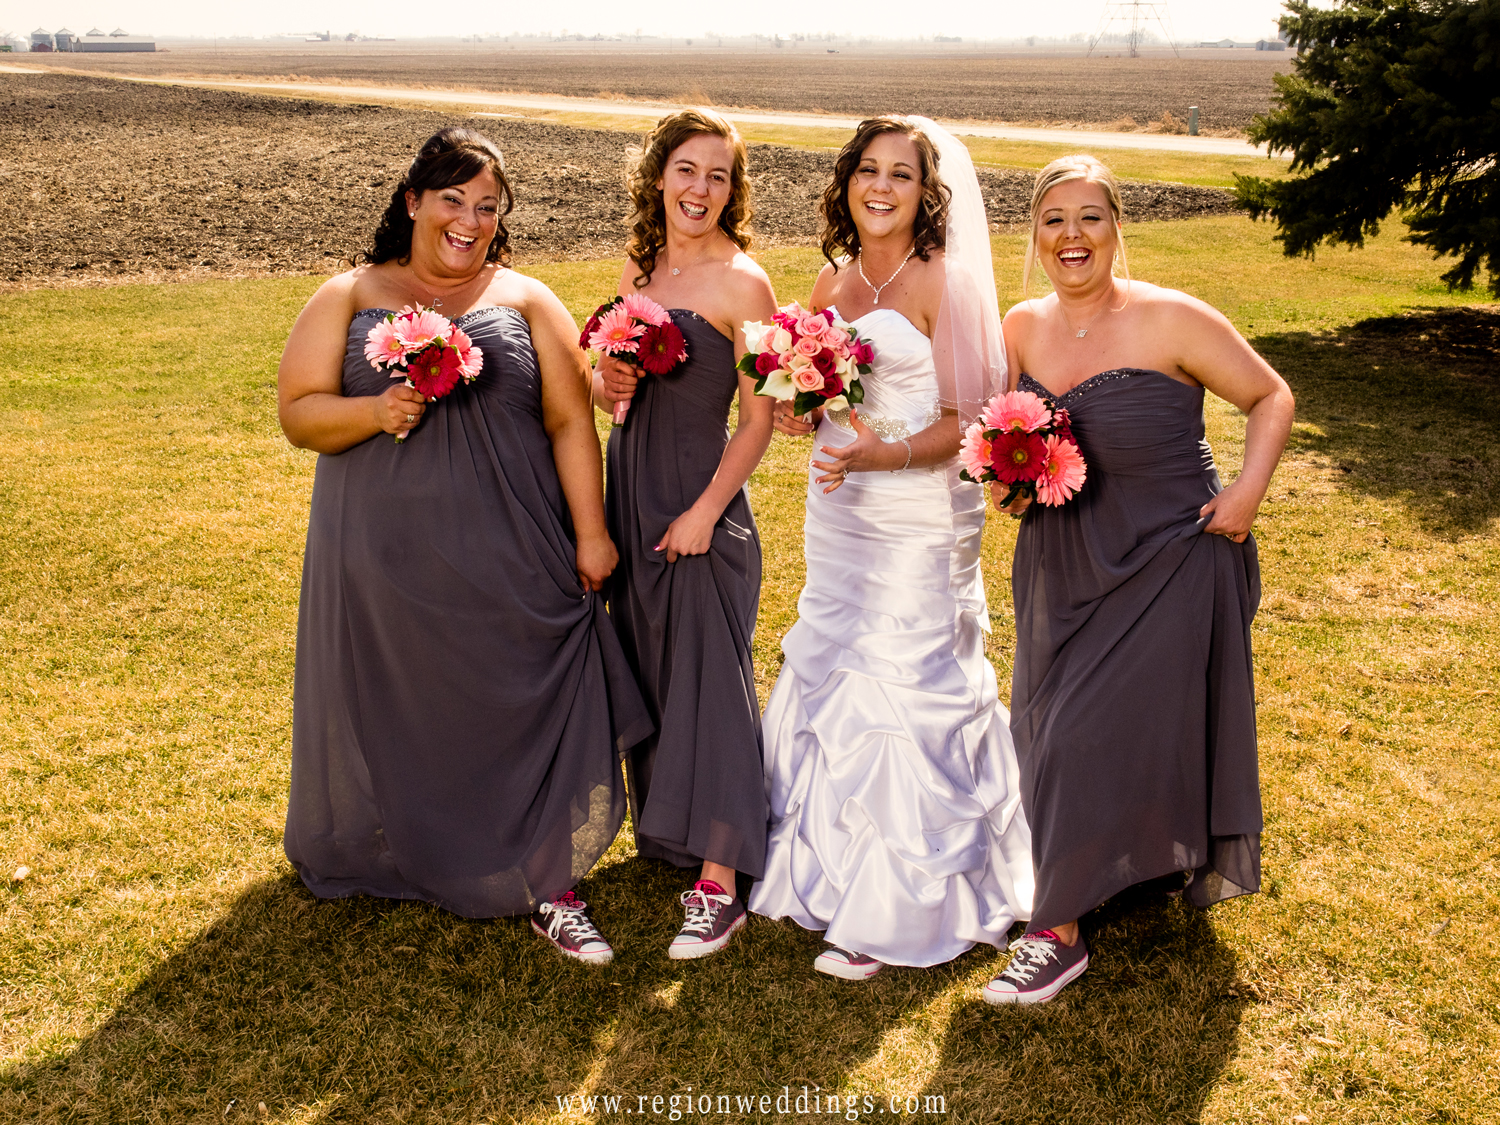 The bridesmaids show off their pink Converse All Stars.